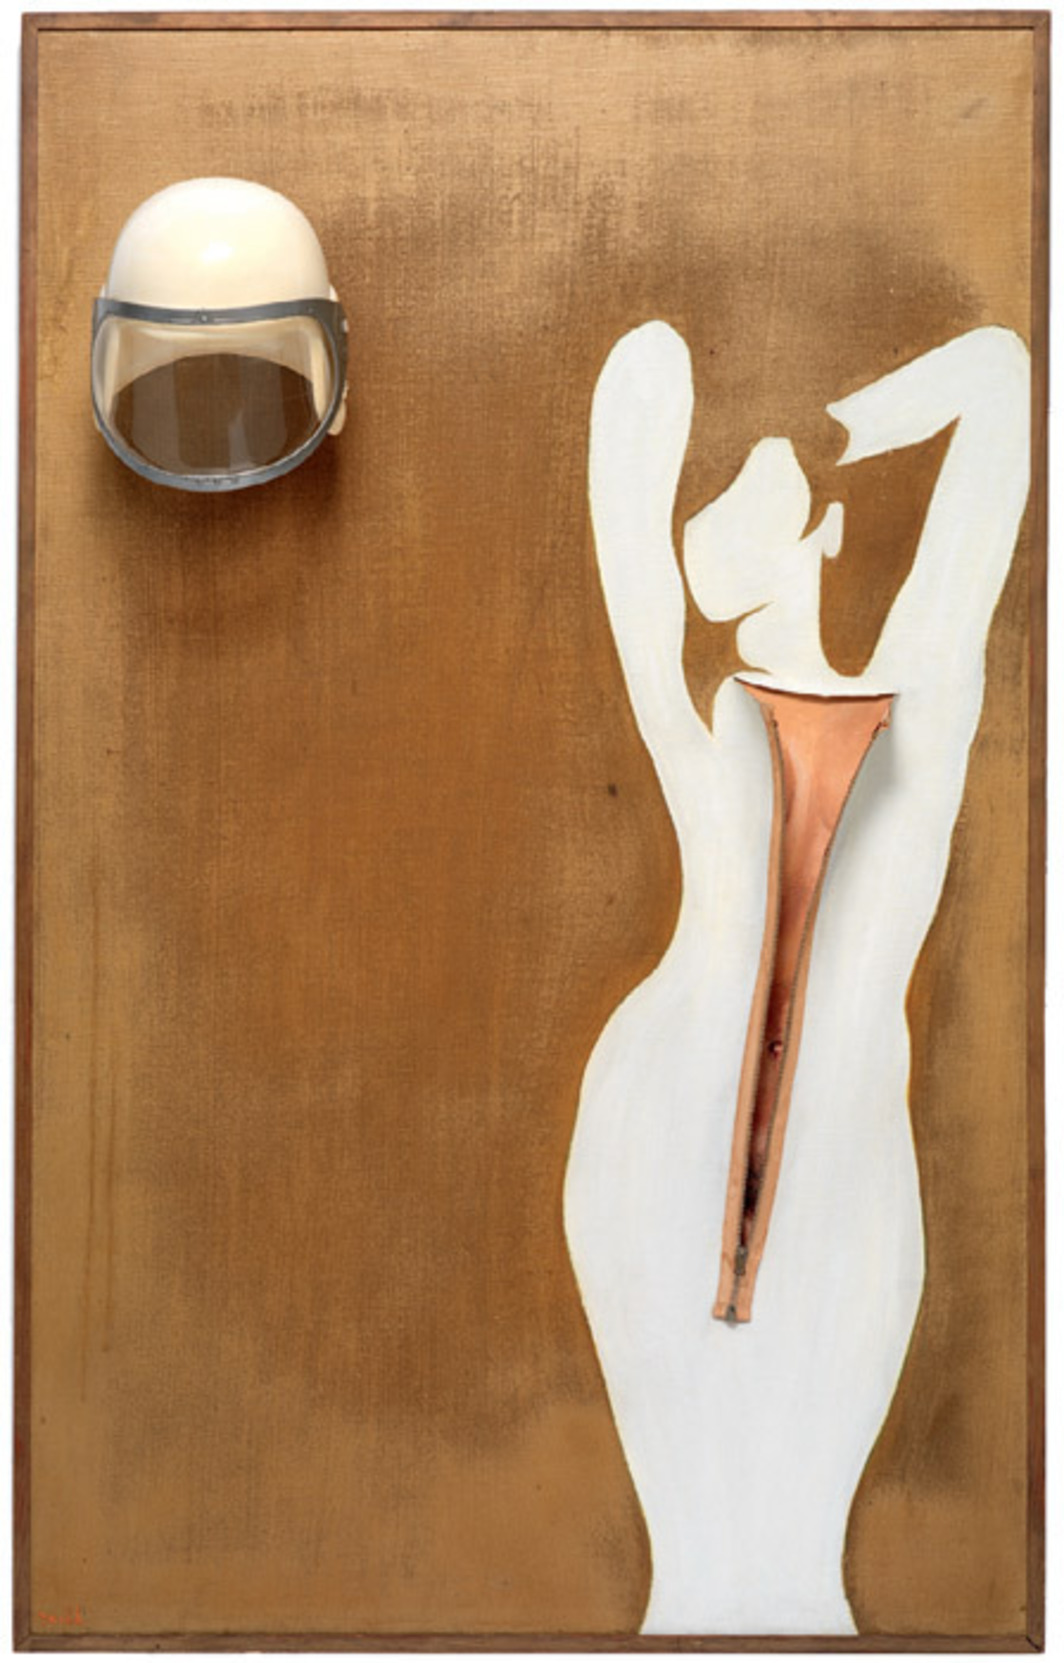 "Evelyne Axell, Valentine, 1966, oil on canvas, gold leaf spray paint, zipper, helmet, 52 3/8 x 32 5/8""."